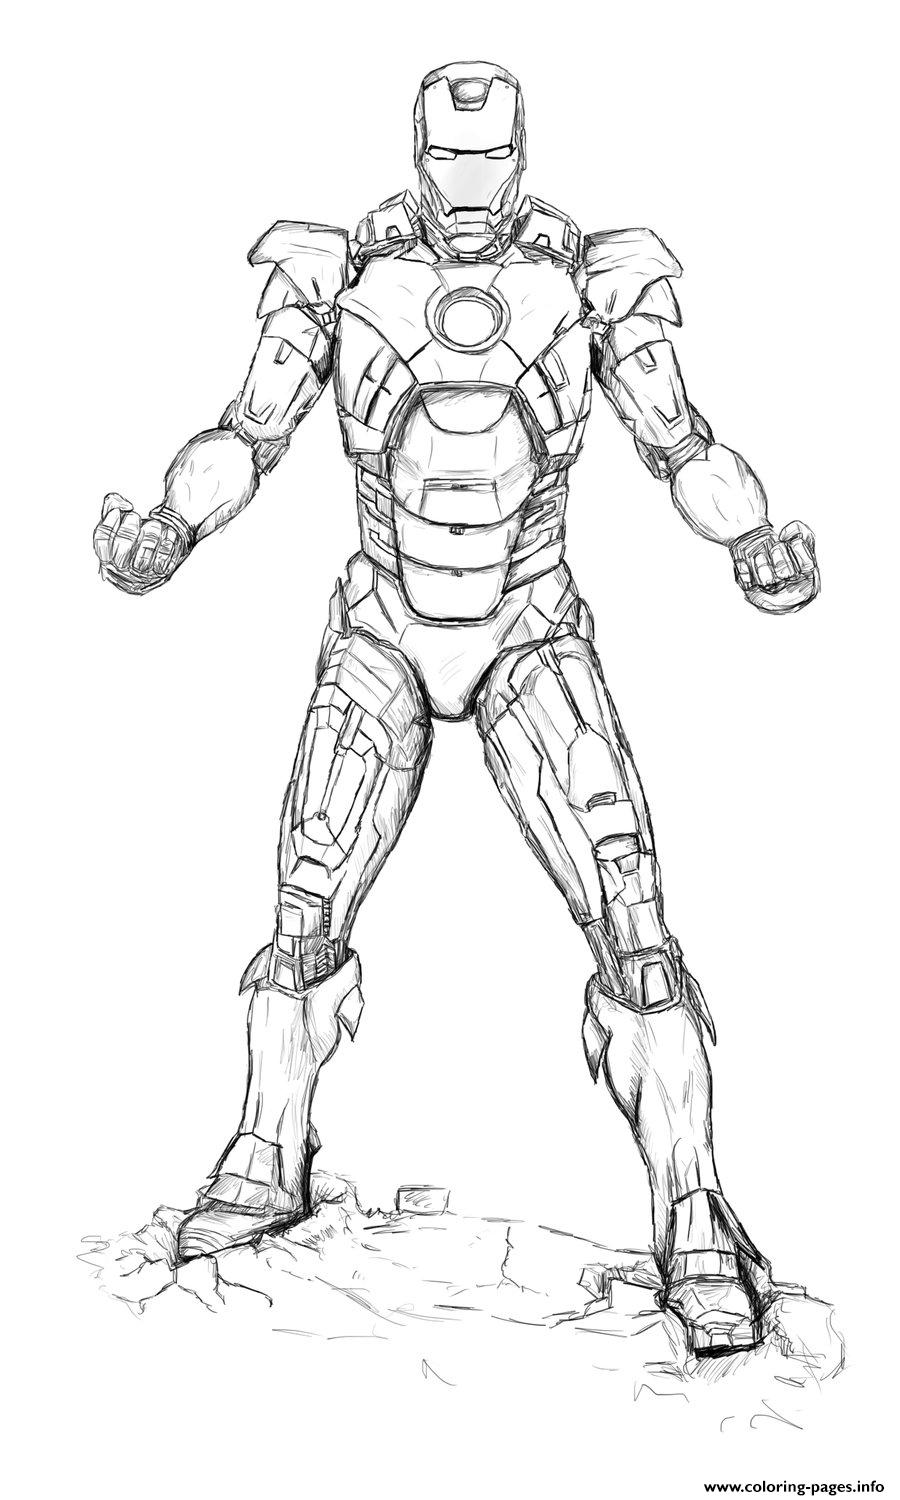 iron man printable images iron man colouring pictures to print for kidsfree iron man printable images